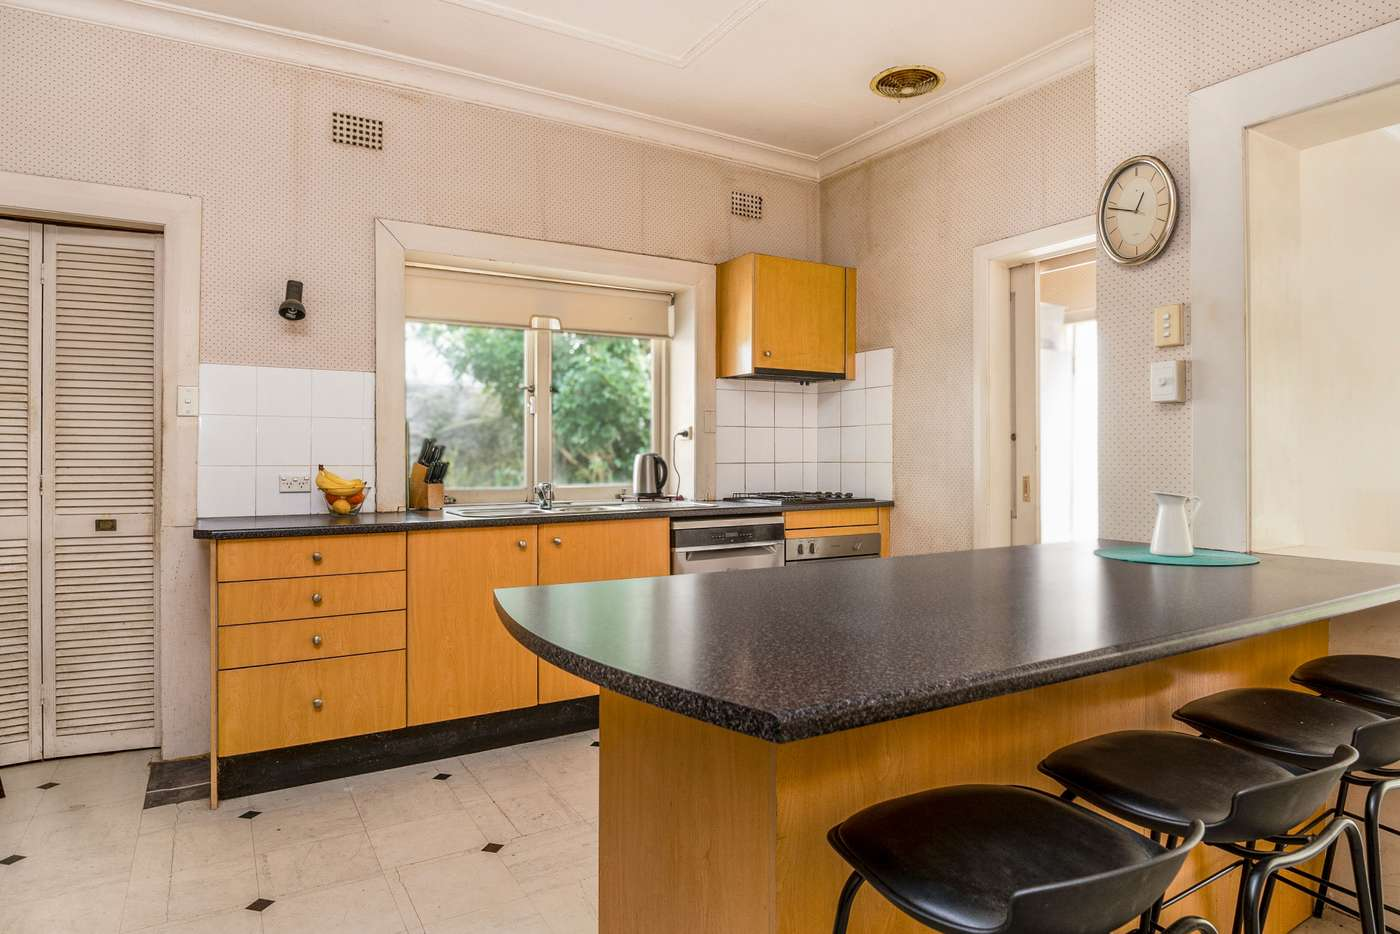 Fifth view of Homely house listing, 218 Spit Road, Mosman NSW 2088